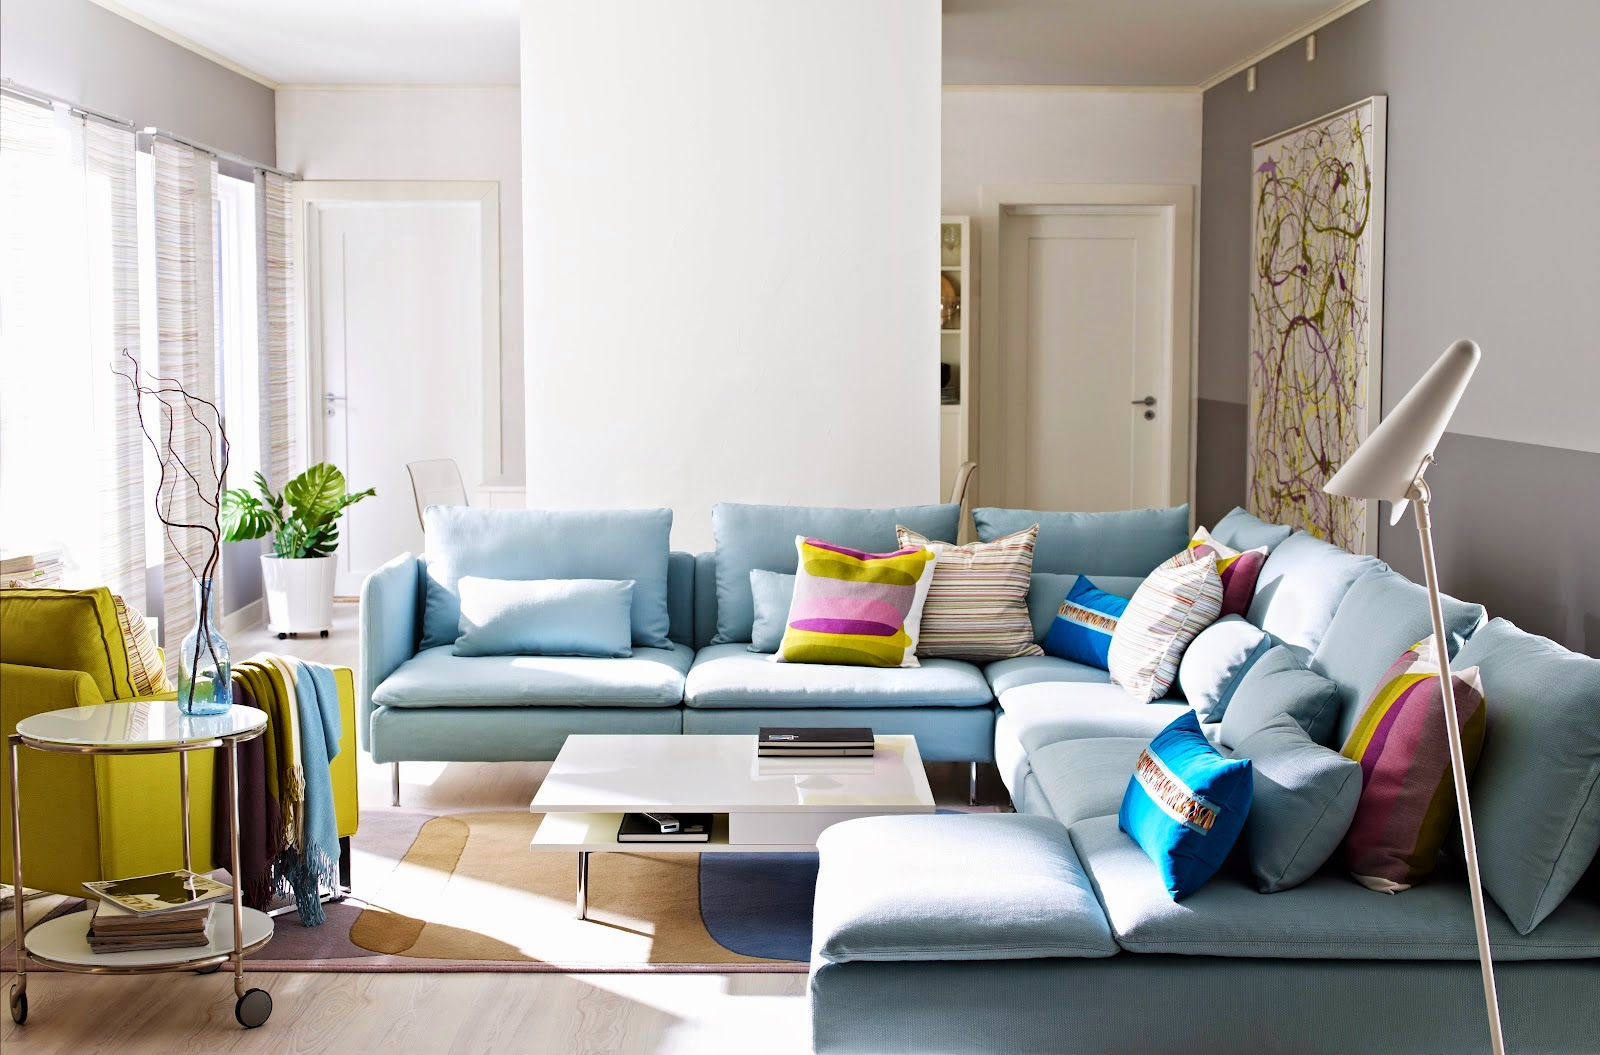 Decorar Con Muebles De Ikea Tendencias En Interiorismo Luxury Living Magazine